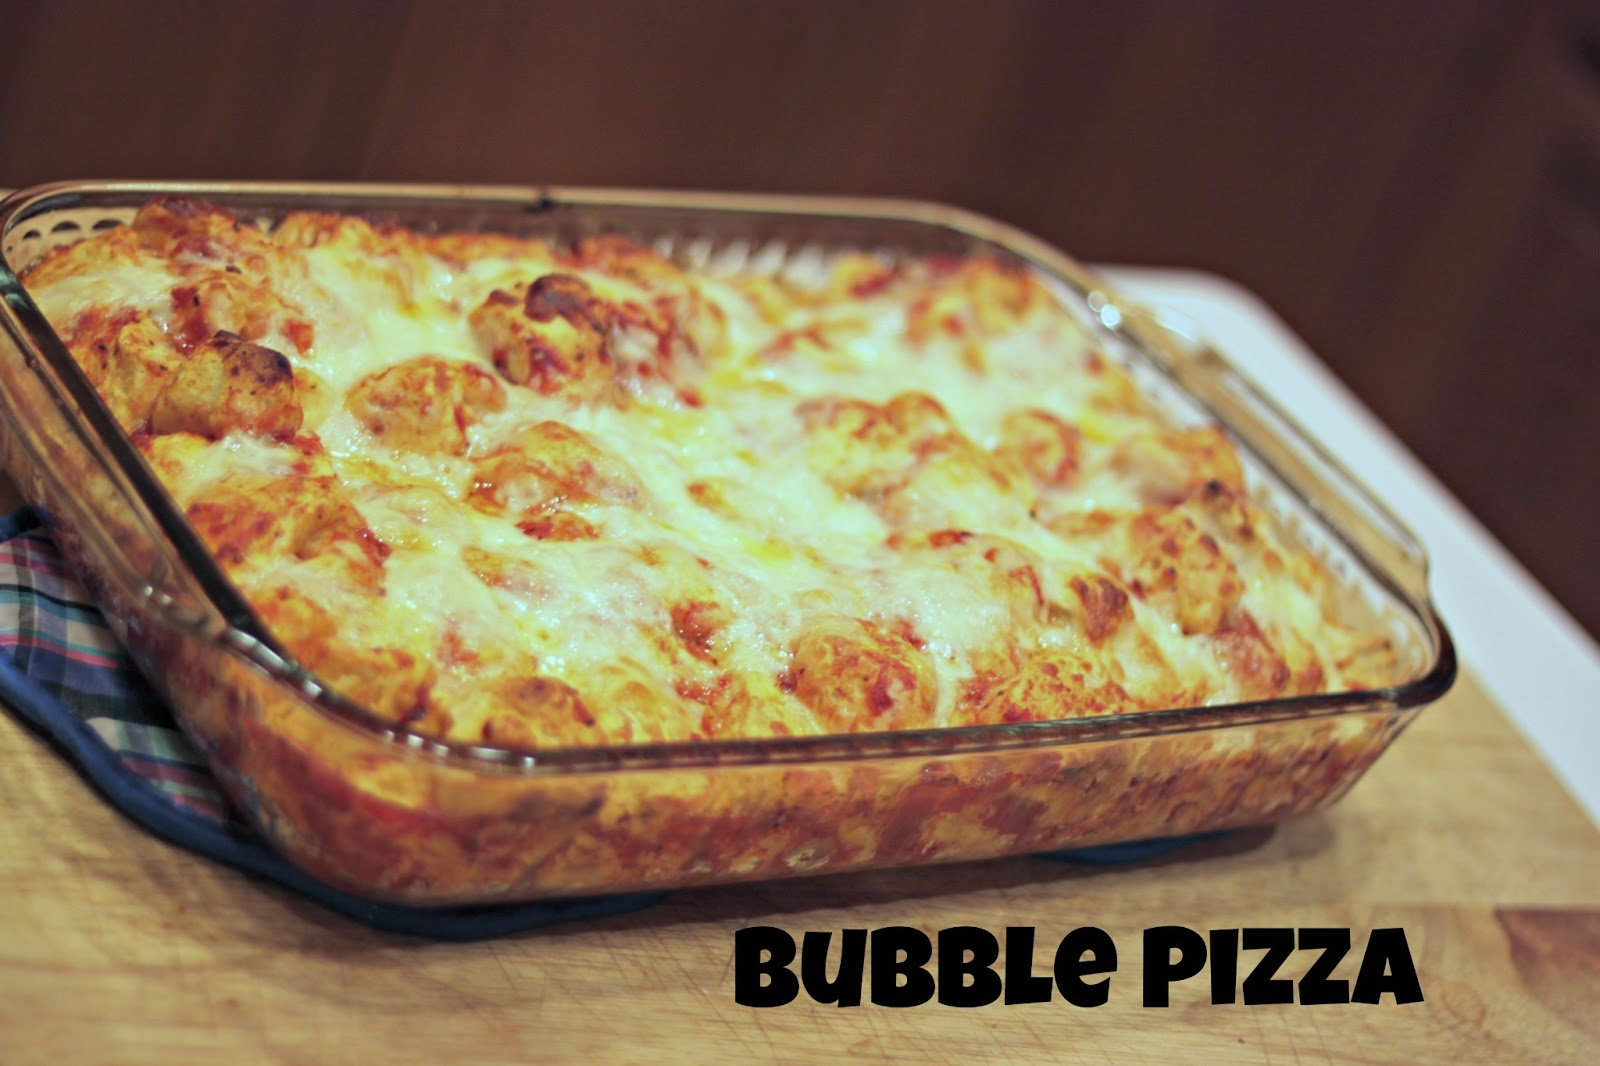 For the Love of Naps: What's for Dinner Wednesday: Bubble Pizza